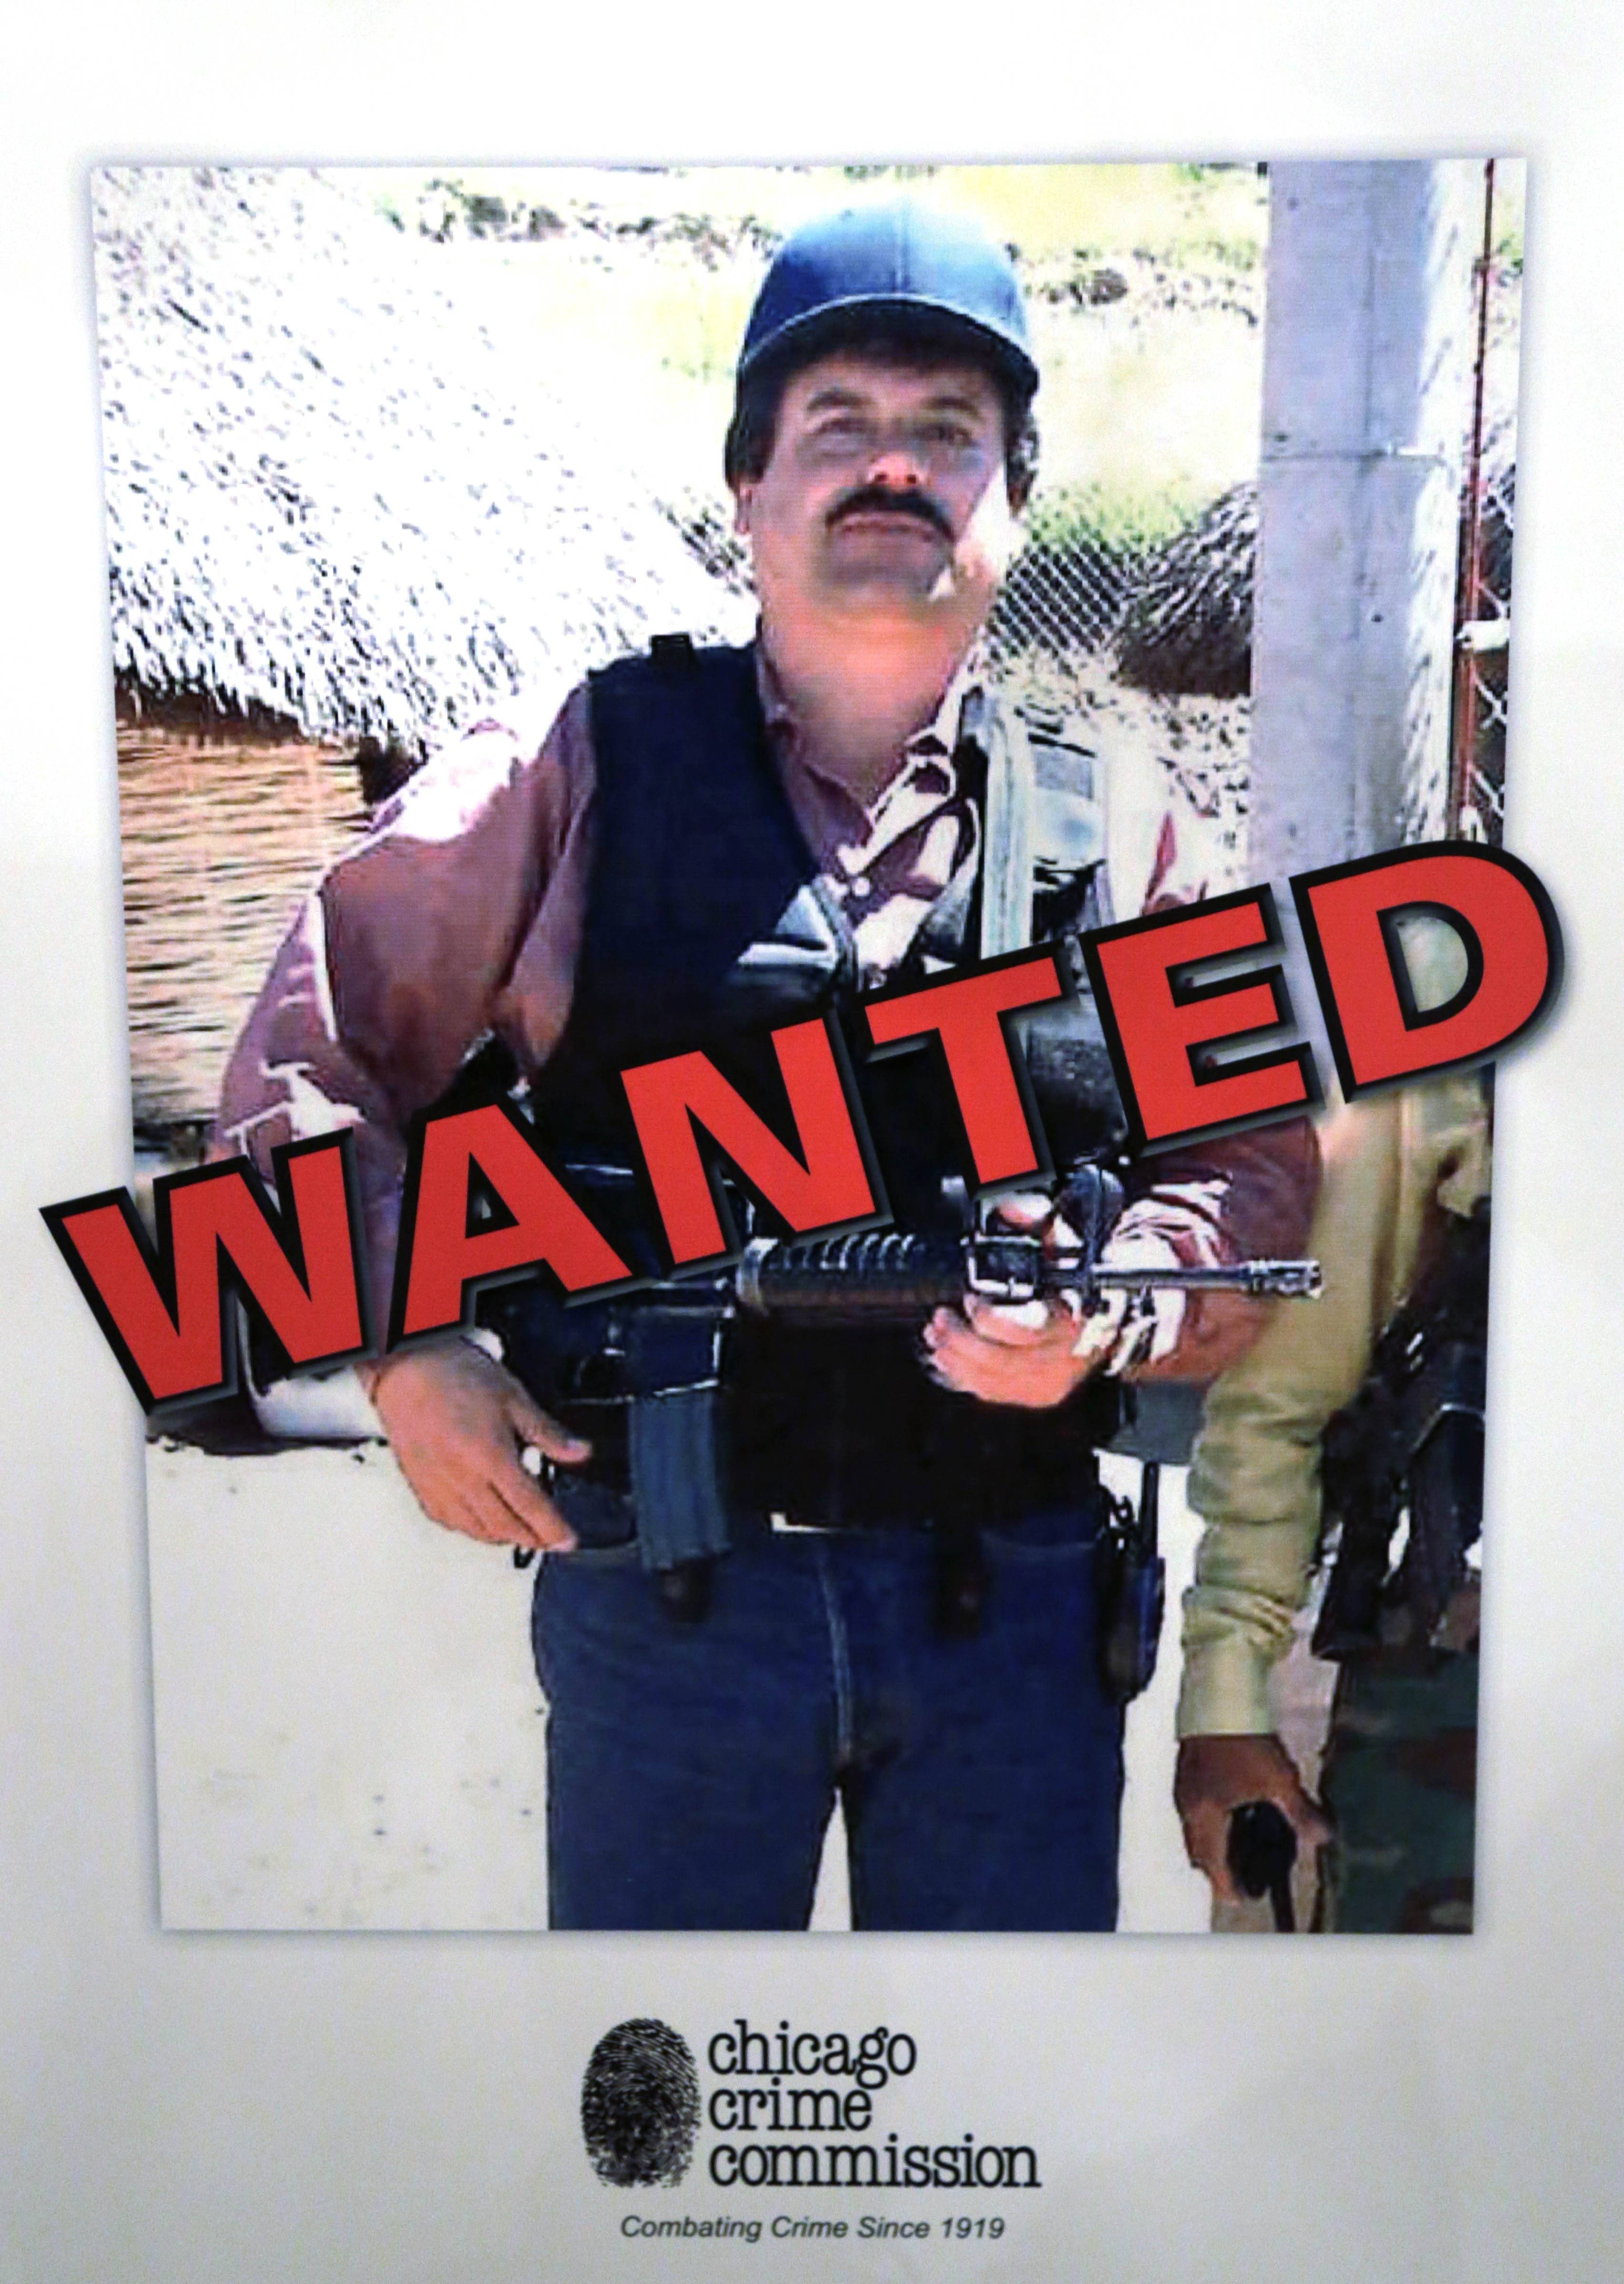 el chapo u0026 39 s rise  from poor  abused to cartel kingpin